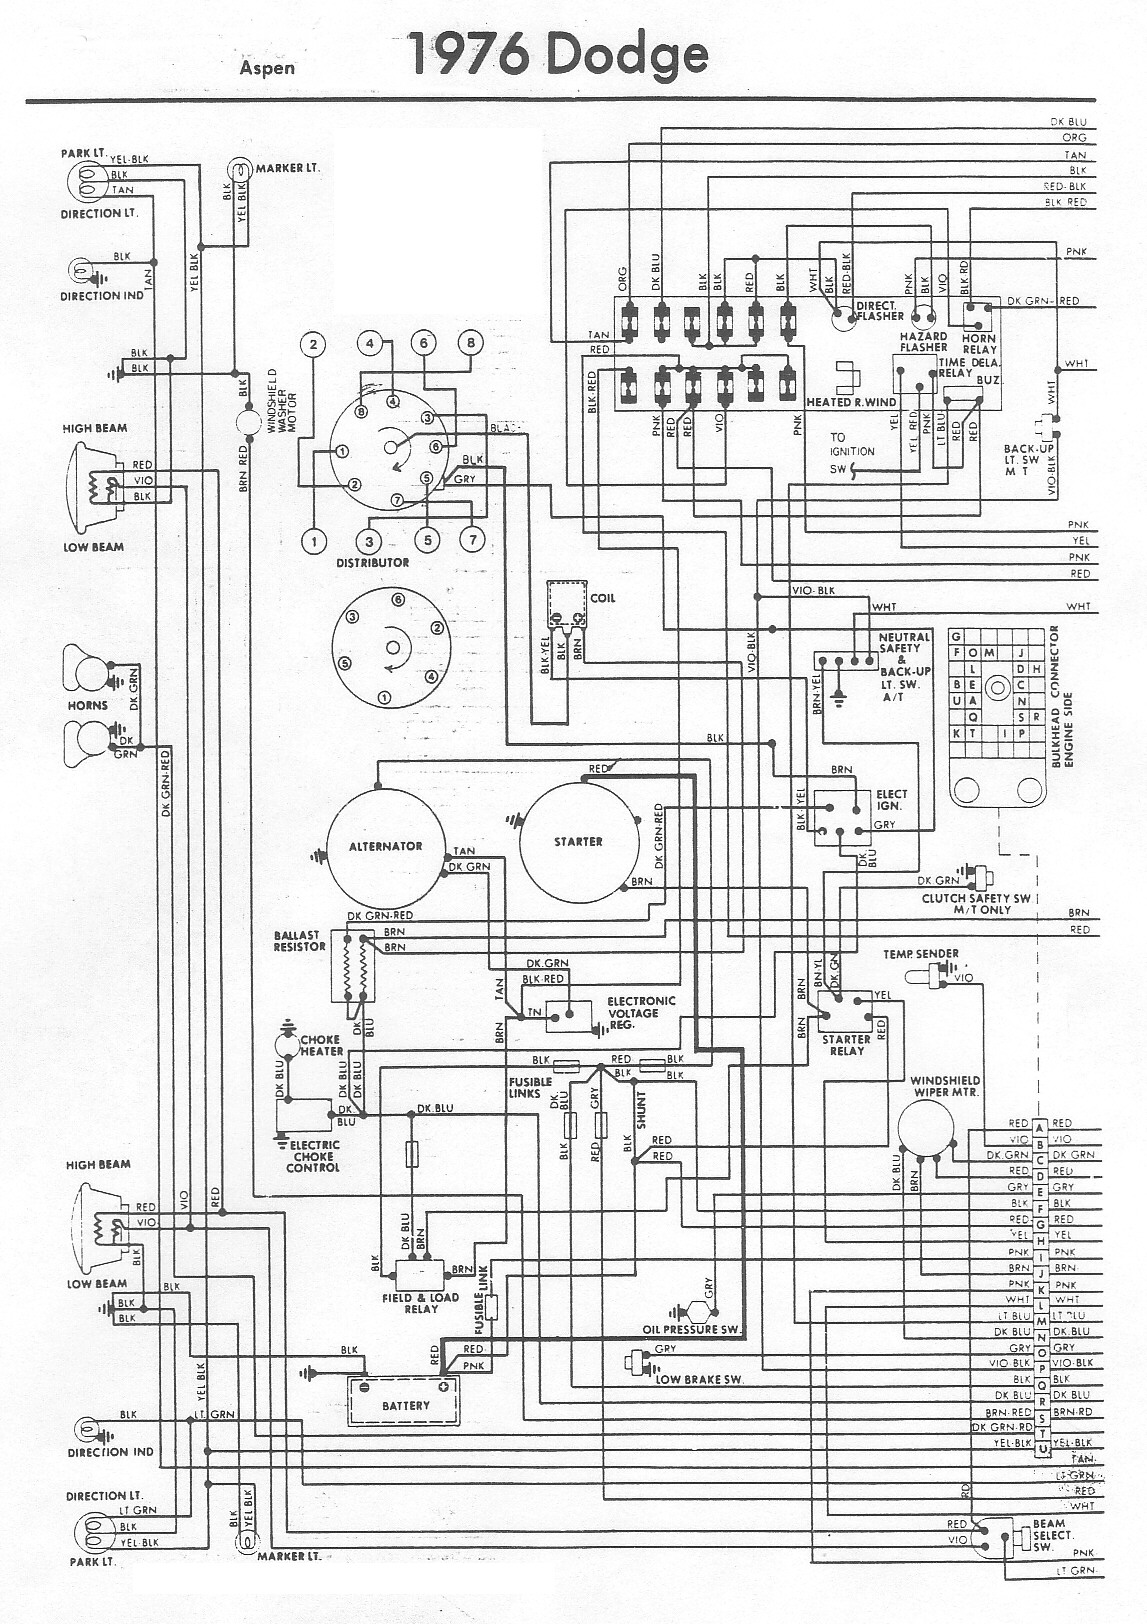 1976 Dodge Aspen Wiring Diagram Under Repository-circuits